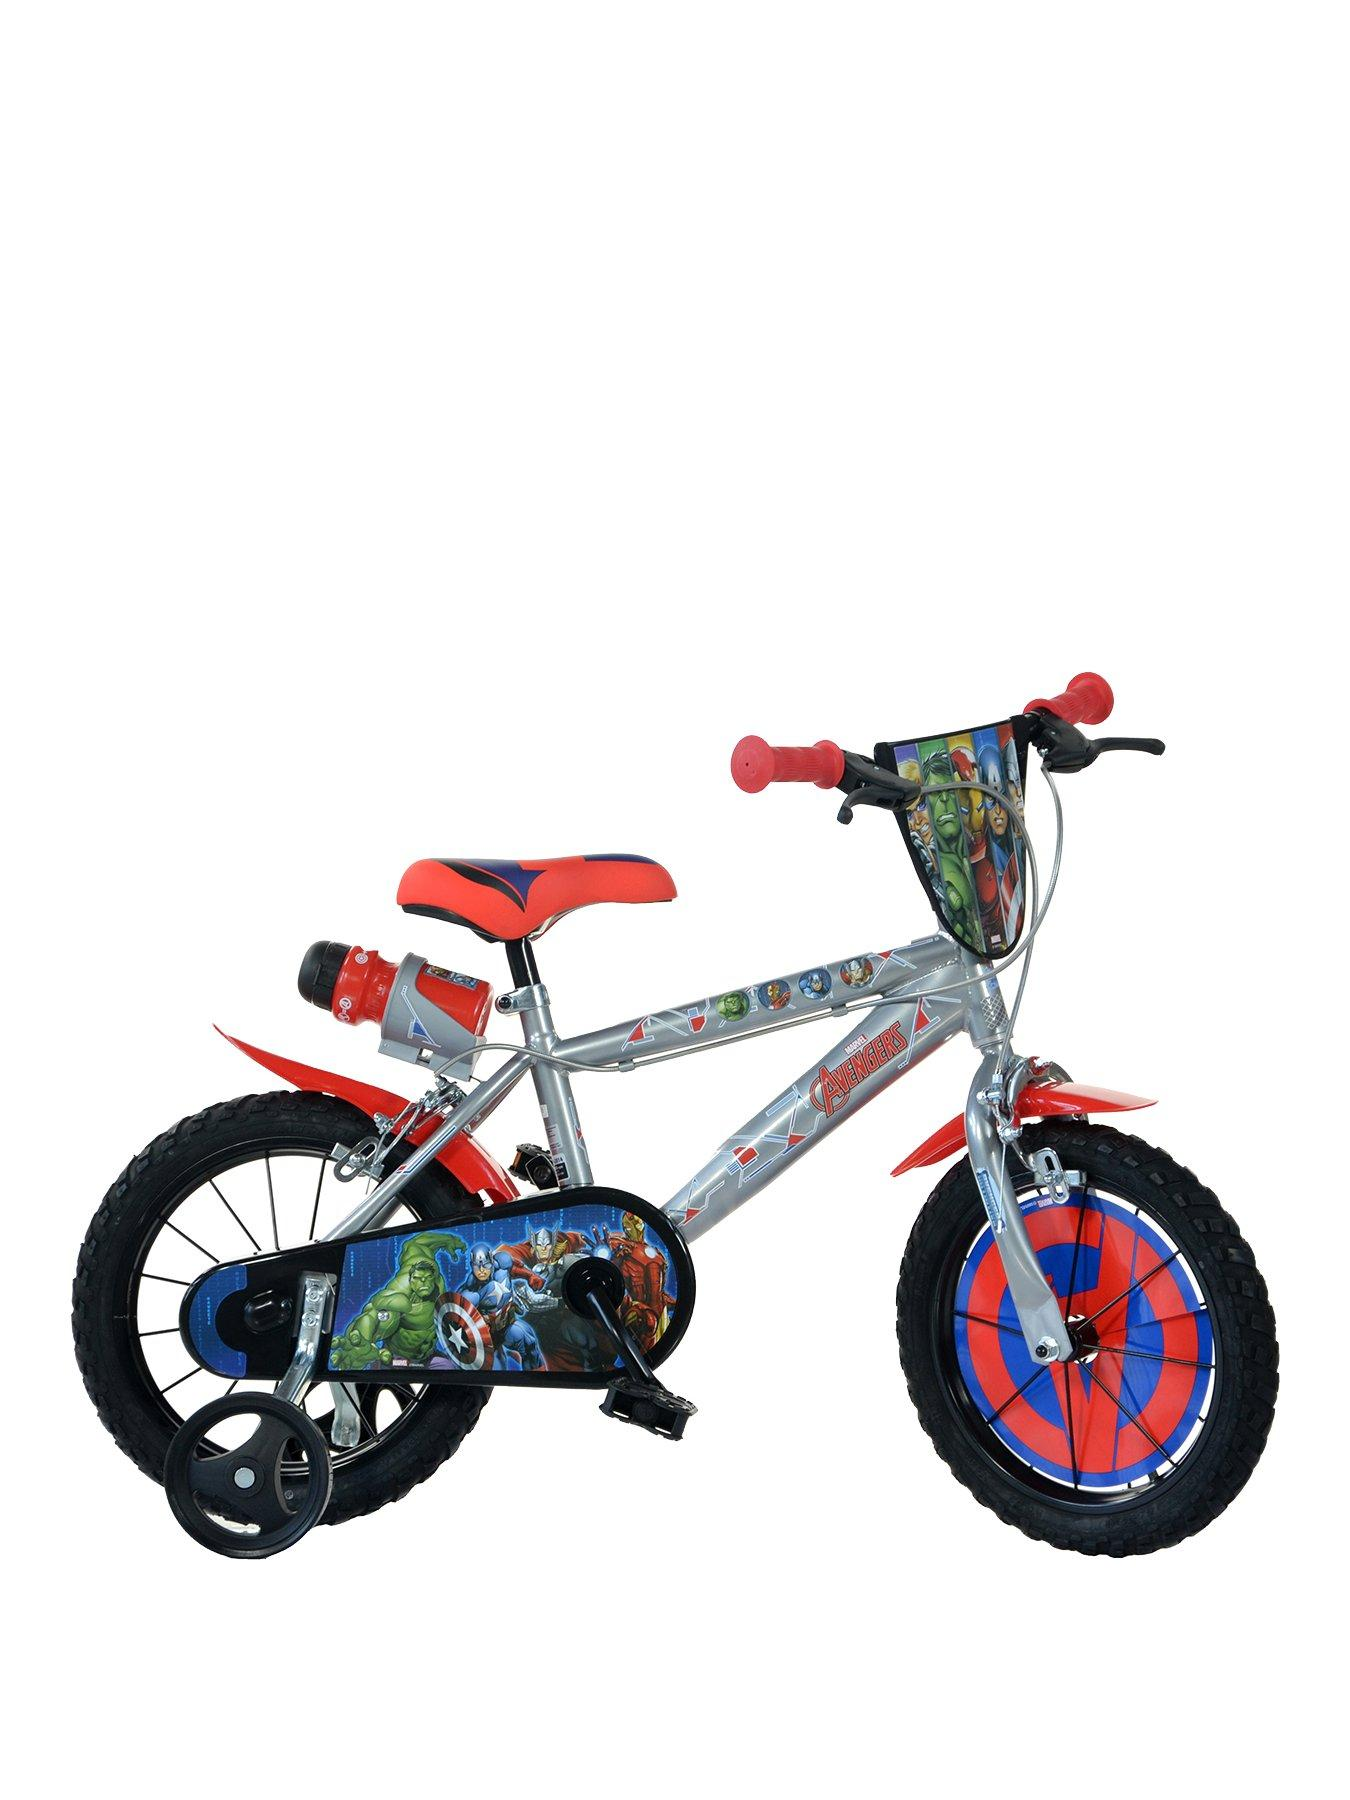 Compare prices for Avengers Age Of Ultron Avengers 16 Inch Bike